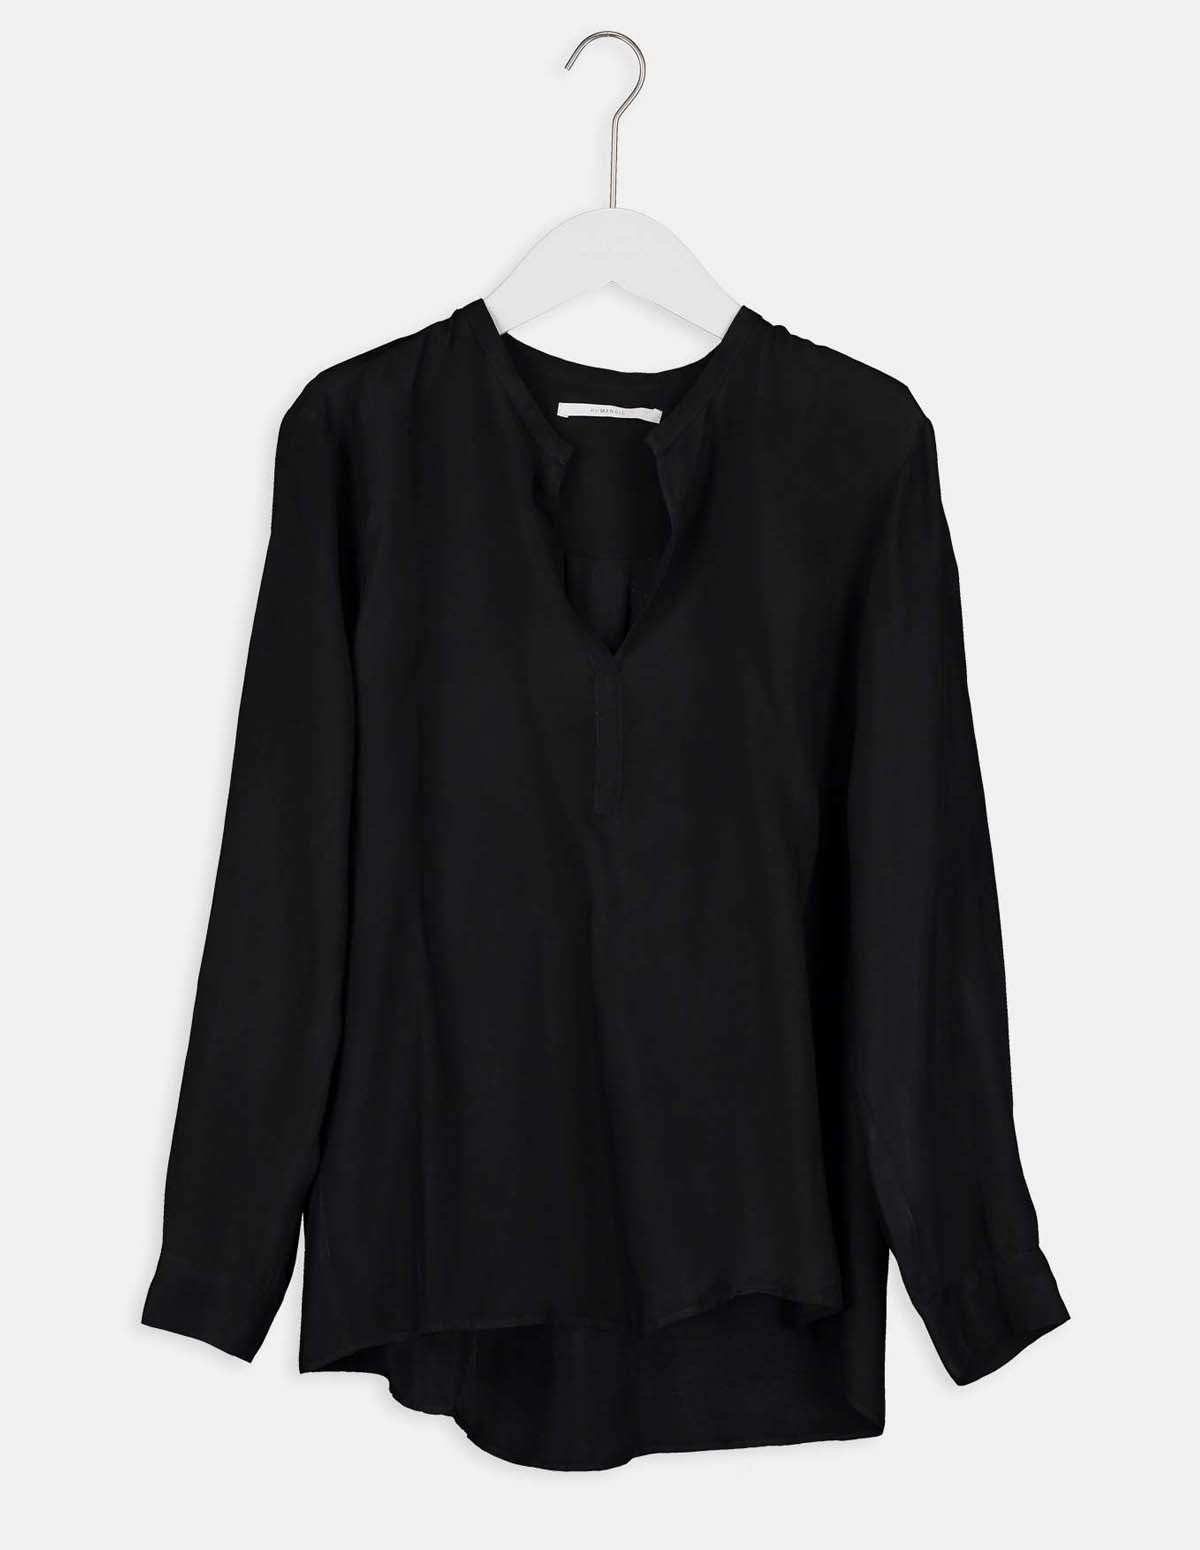 Huma Demie Top - BLACKISH